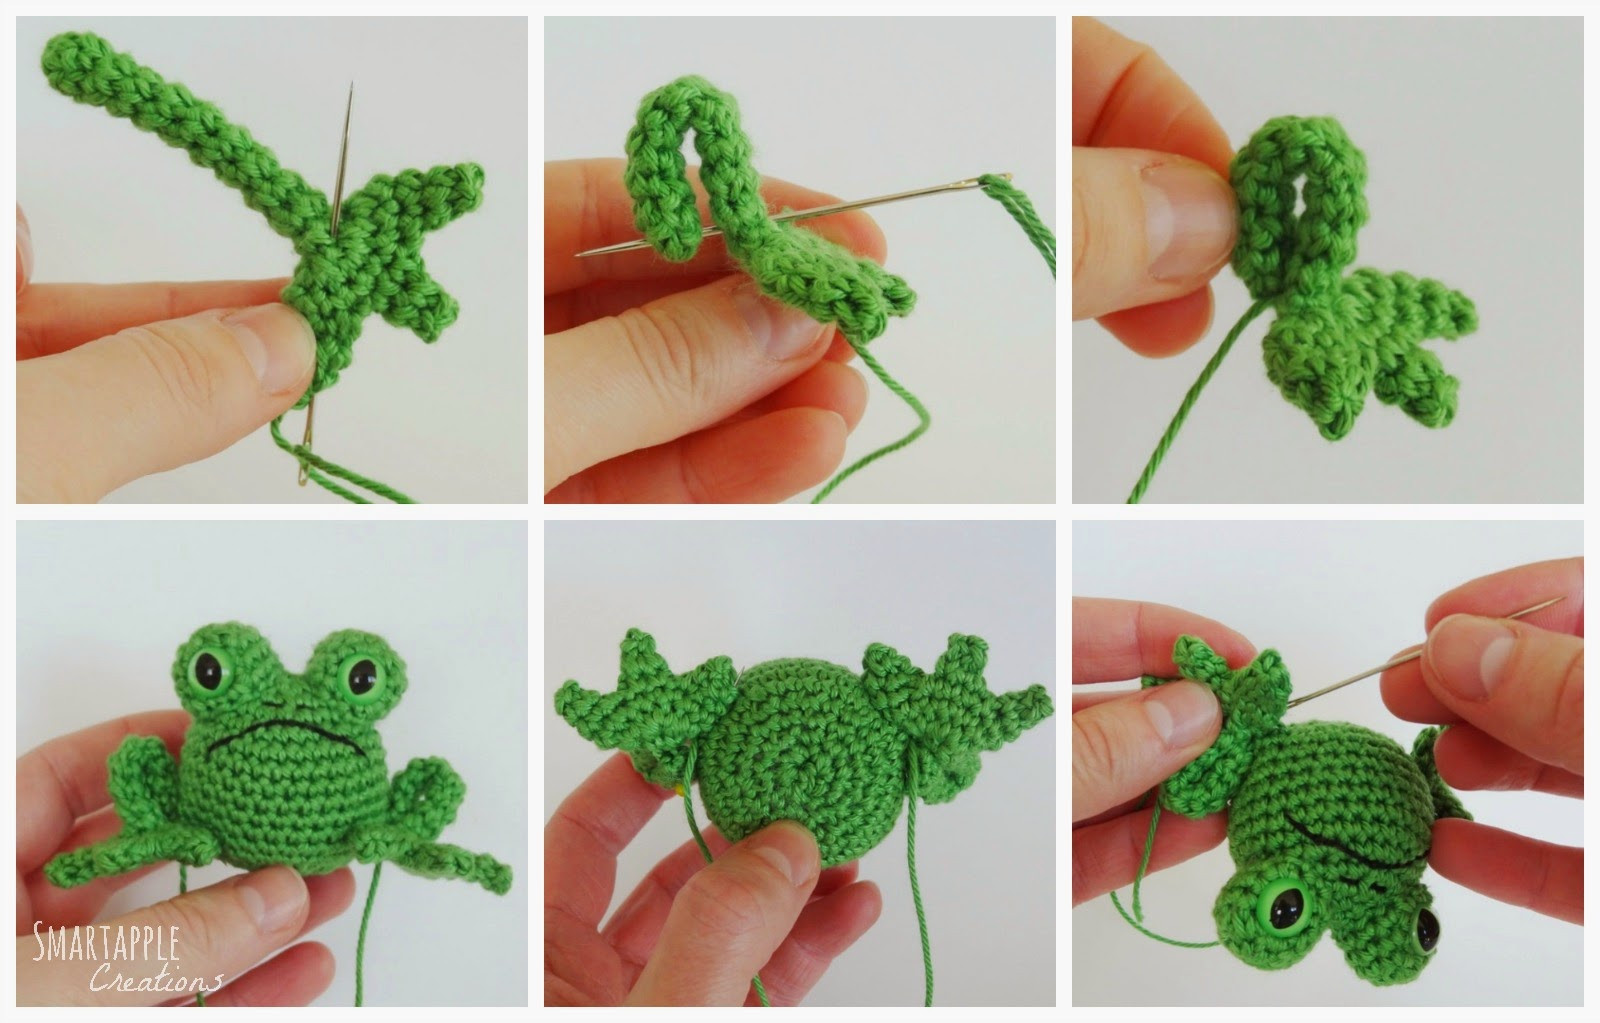 Crochet Frogs Luxury Smartapple Creations Amigurumi and Crochet Free Pattern Of Superb 49 Pictures Crochet Frogs